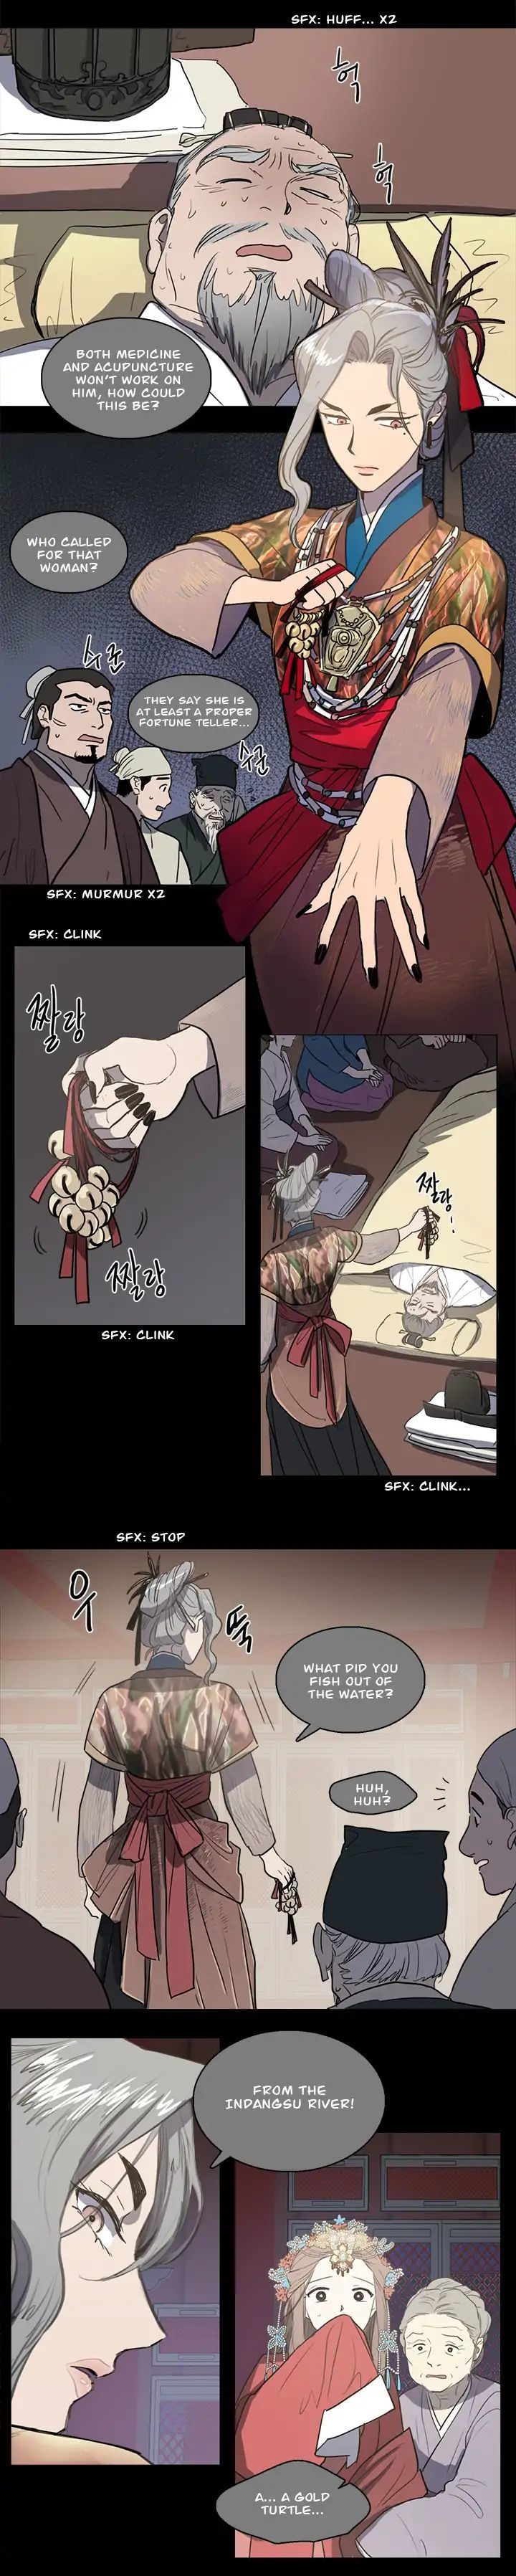 Her Shim Cheong 34 Page 2